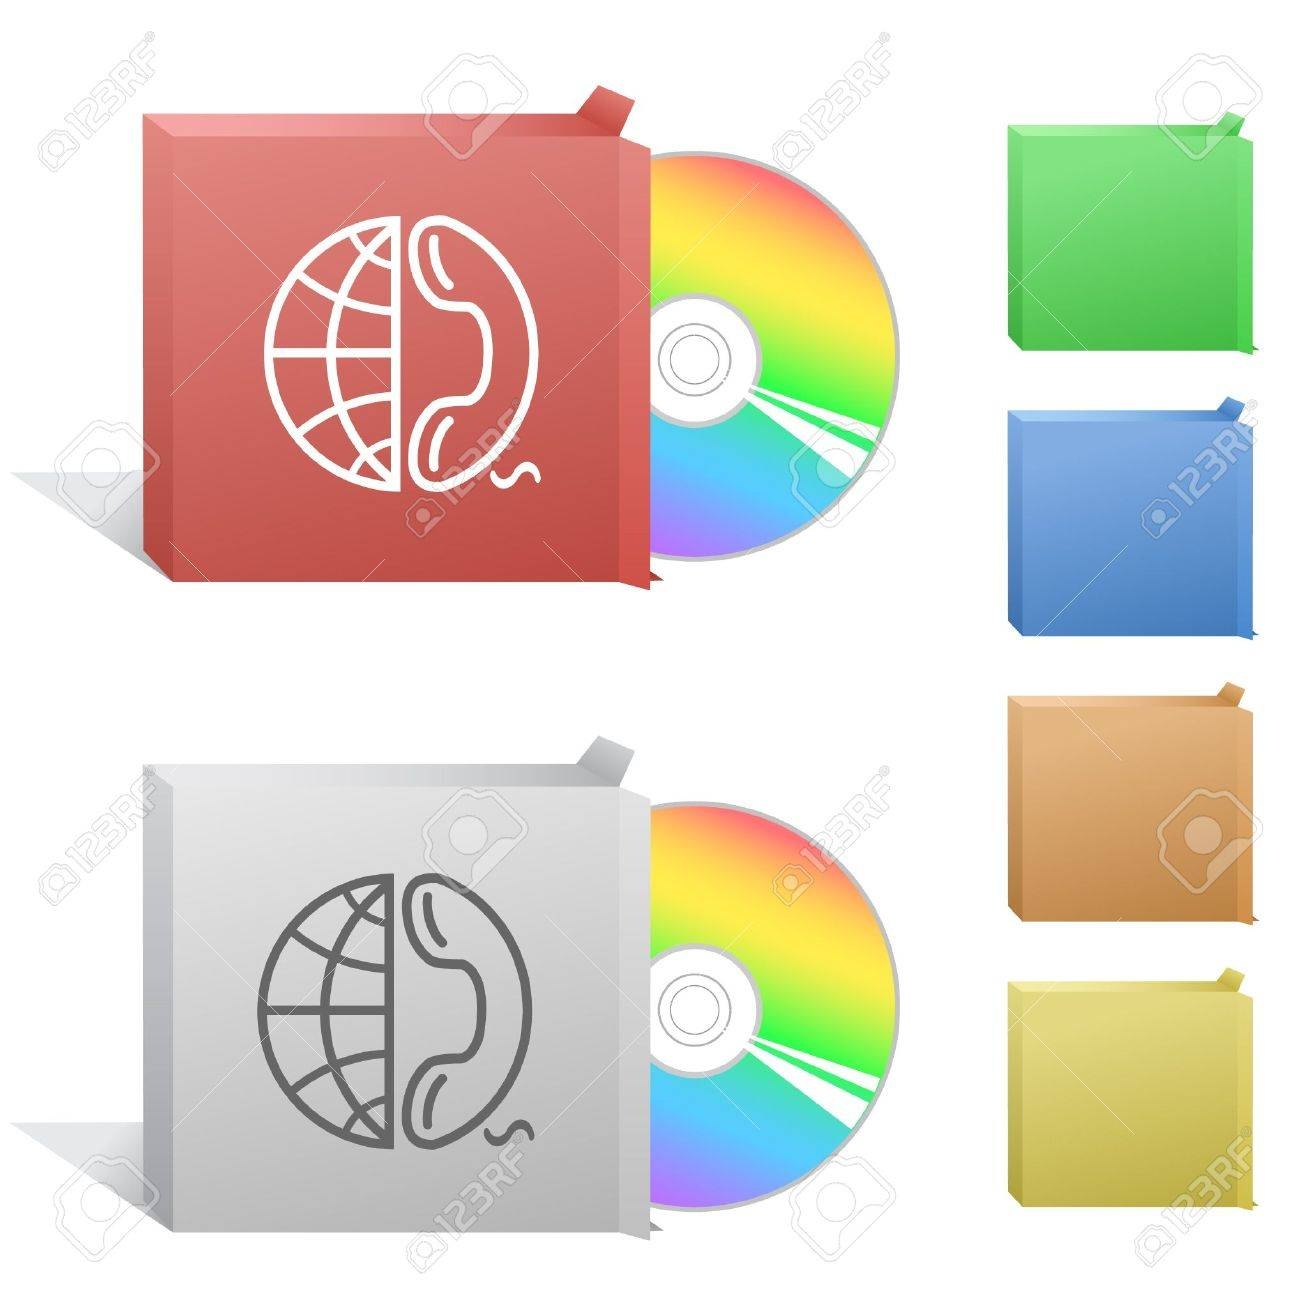 Globe and phone. Box with compact disc. Stock Vector - 6732270